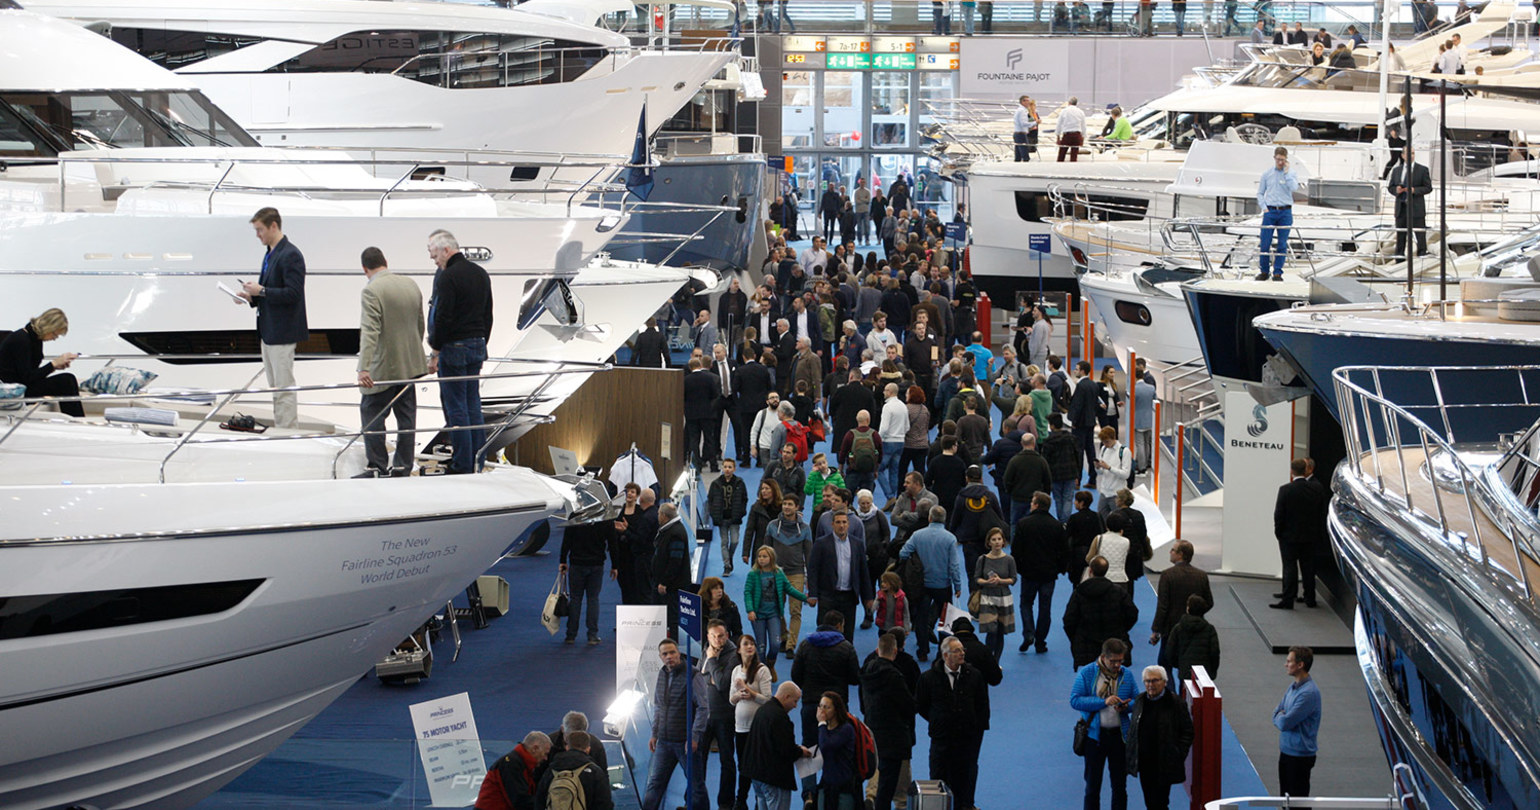 Dusseldorf Boat Show 2018: 20-28 January